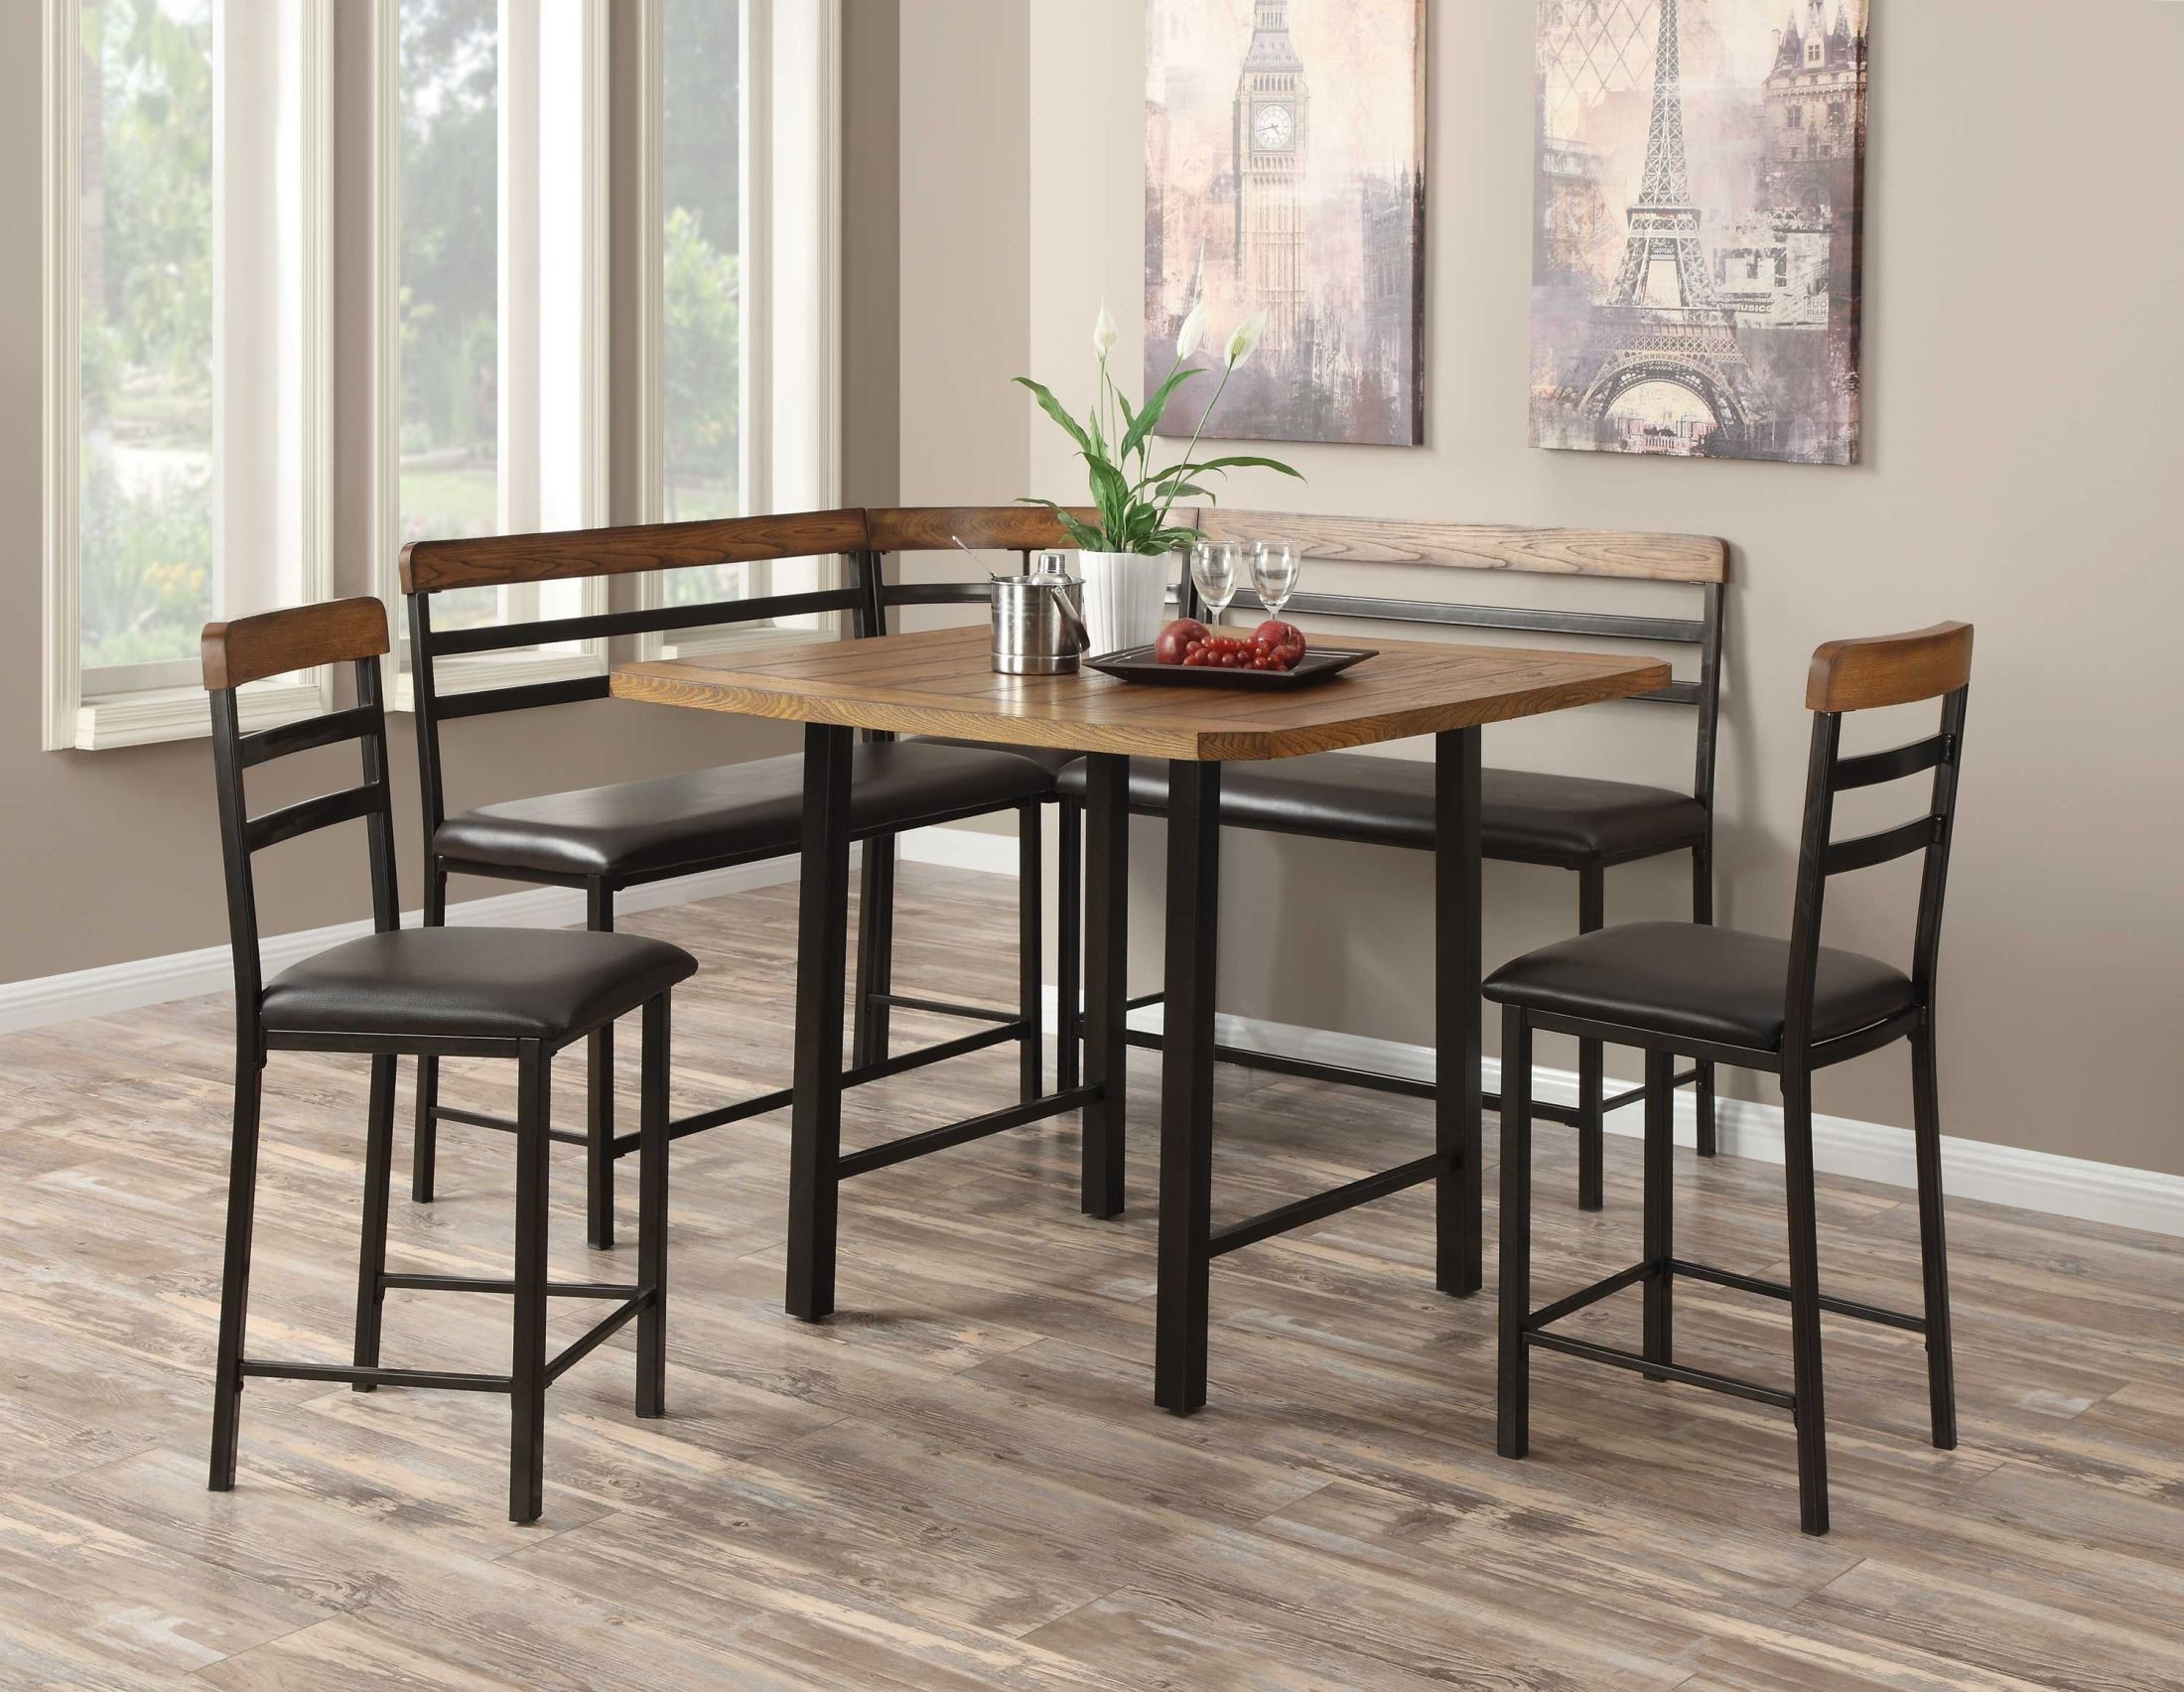 Sheldon Counter Height Stool Set of 2 from Coaster 121609  : 121608 121607 121609 a from colemanfurniture.com size 2200 x 1704 jpeg 623kB